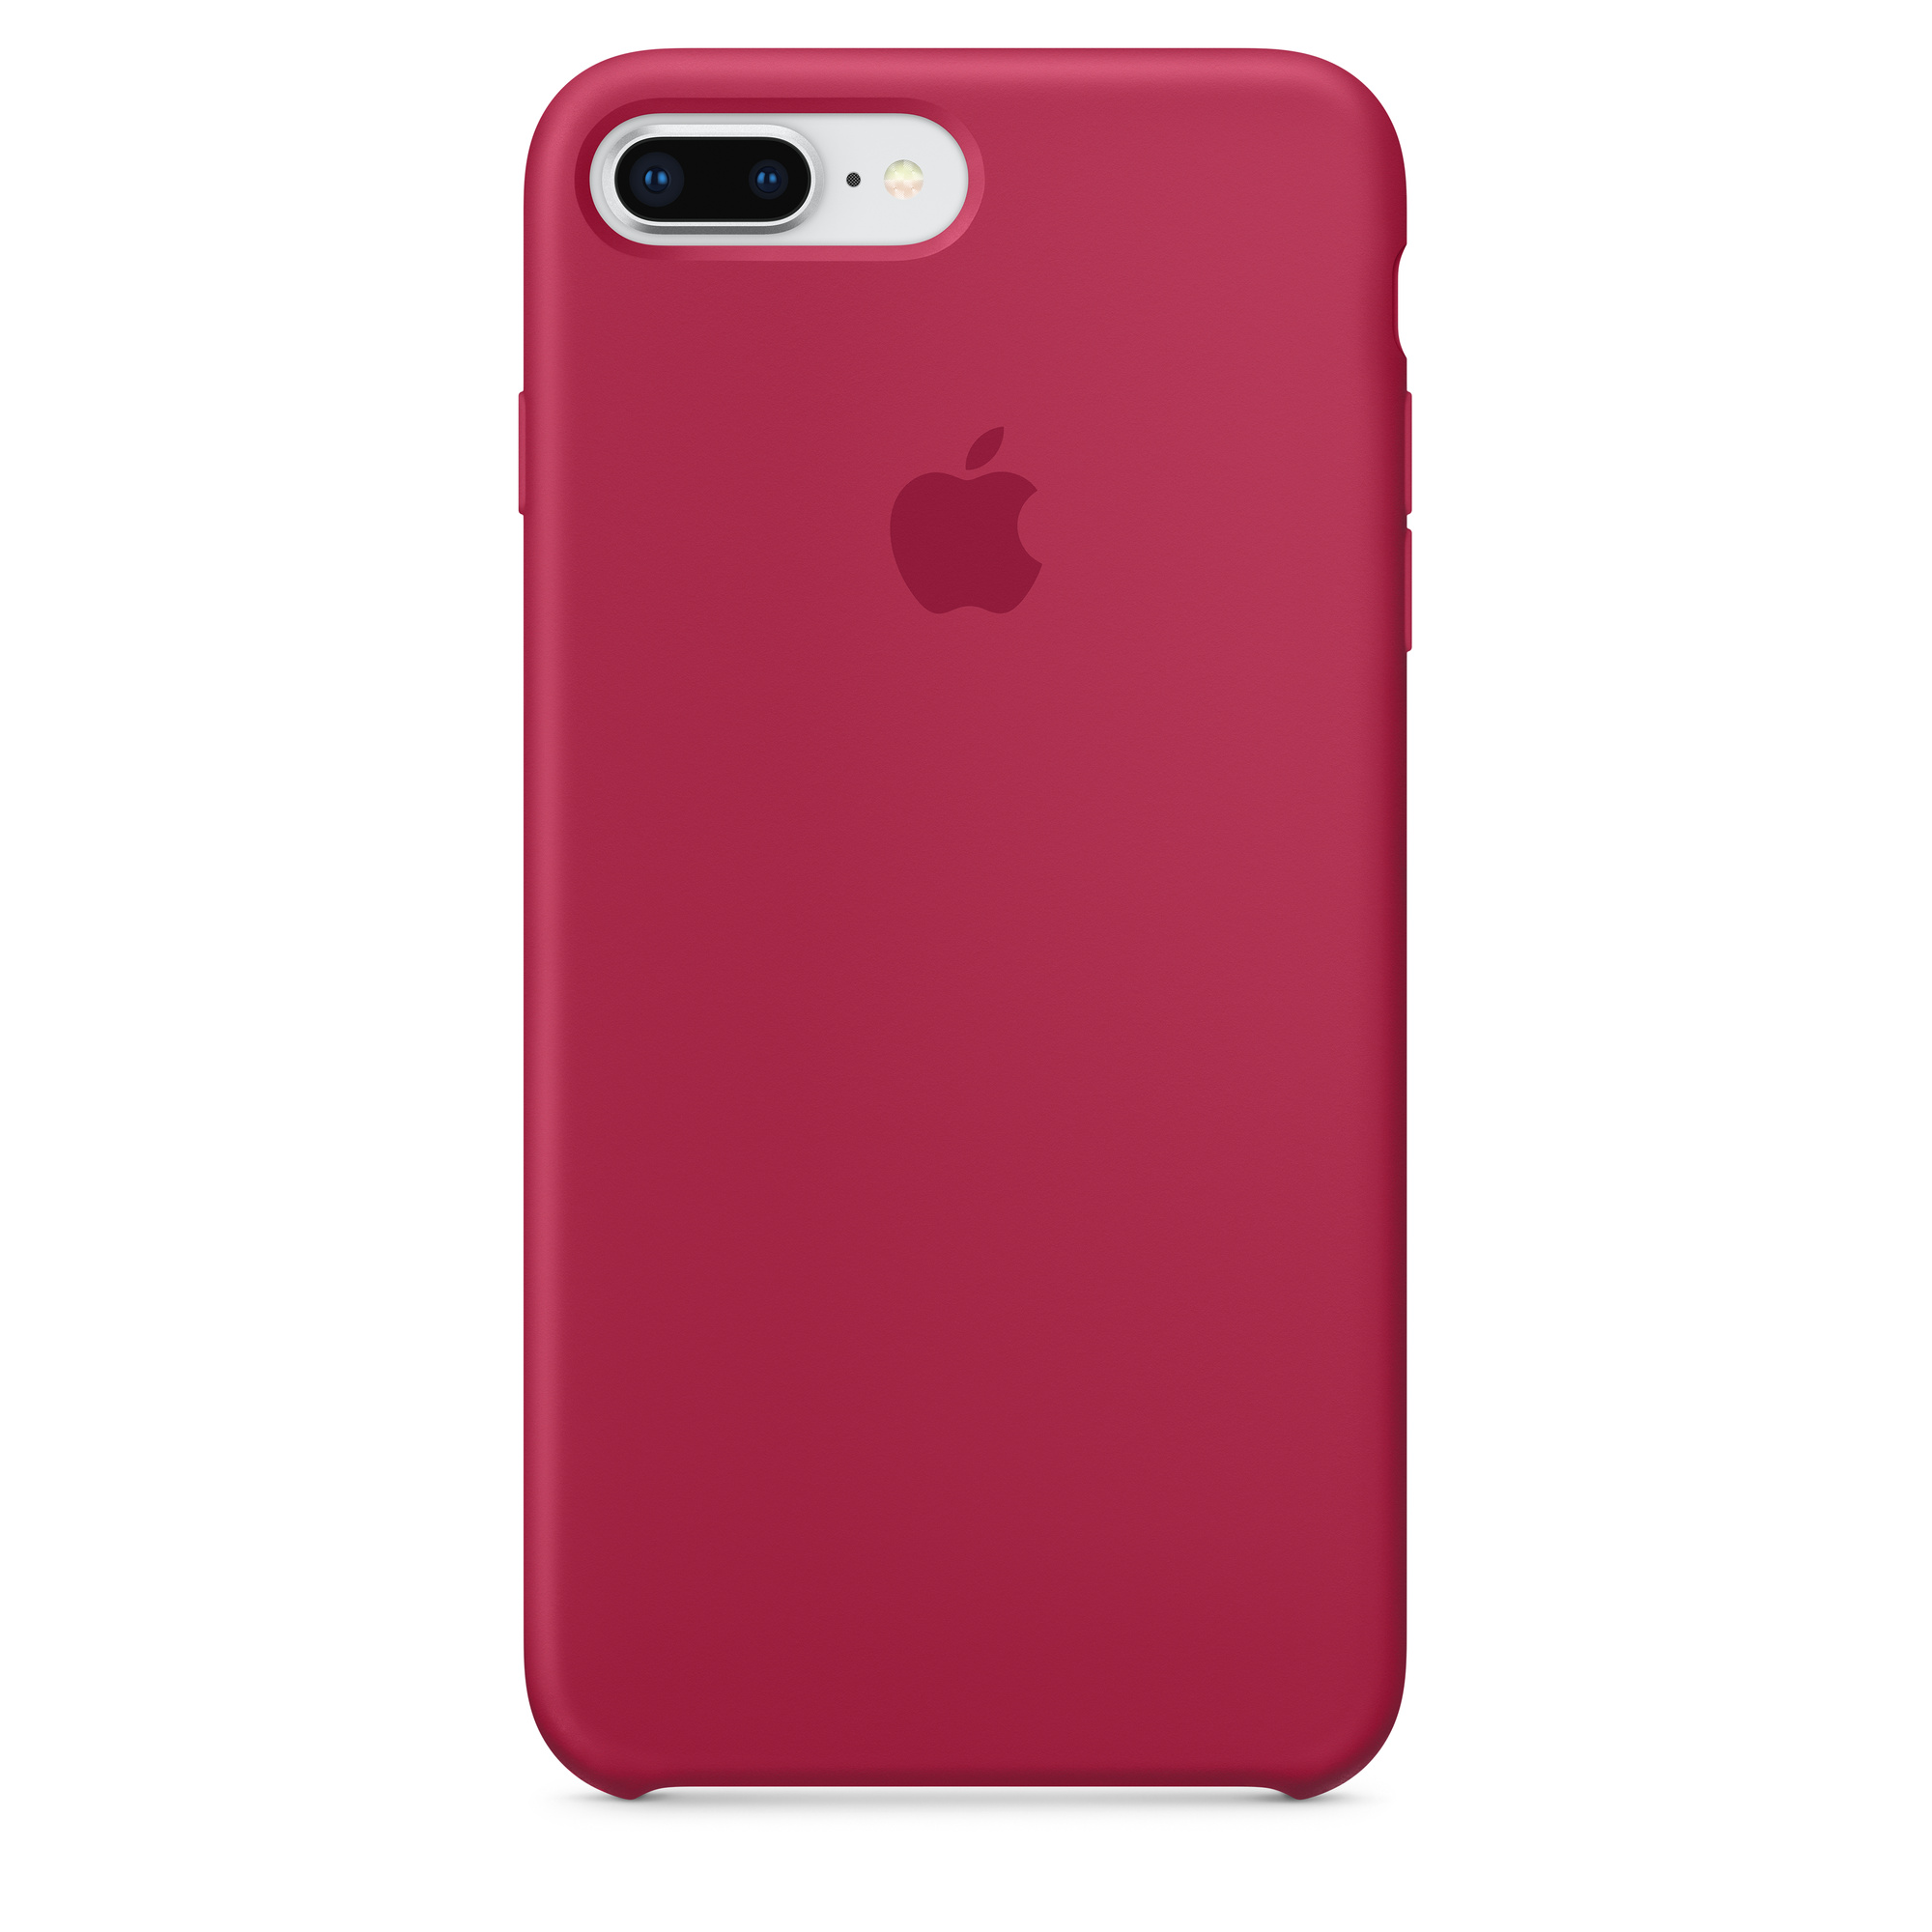 sports shoes 710bb ad3ef iPhone 8 Plus / 7 Plus Silicone Case - Rose Red